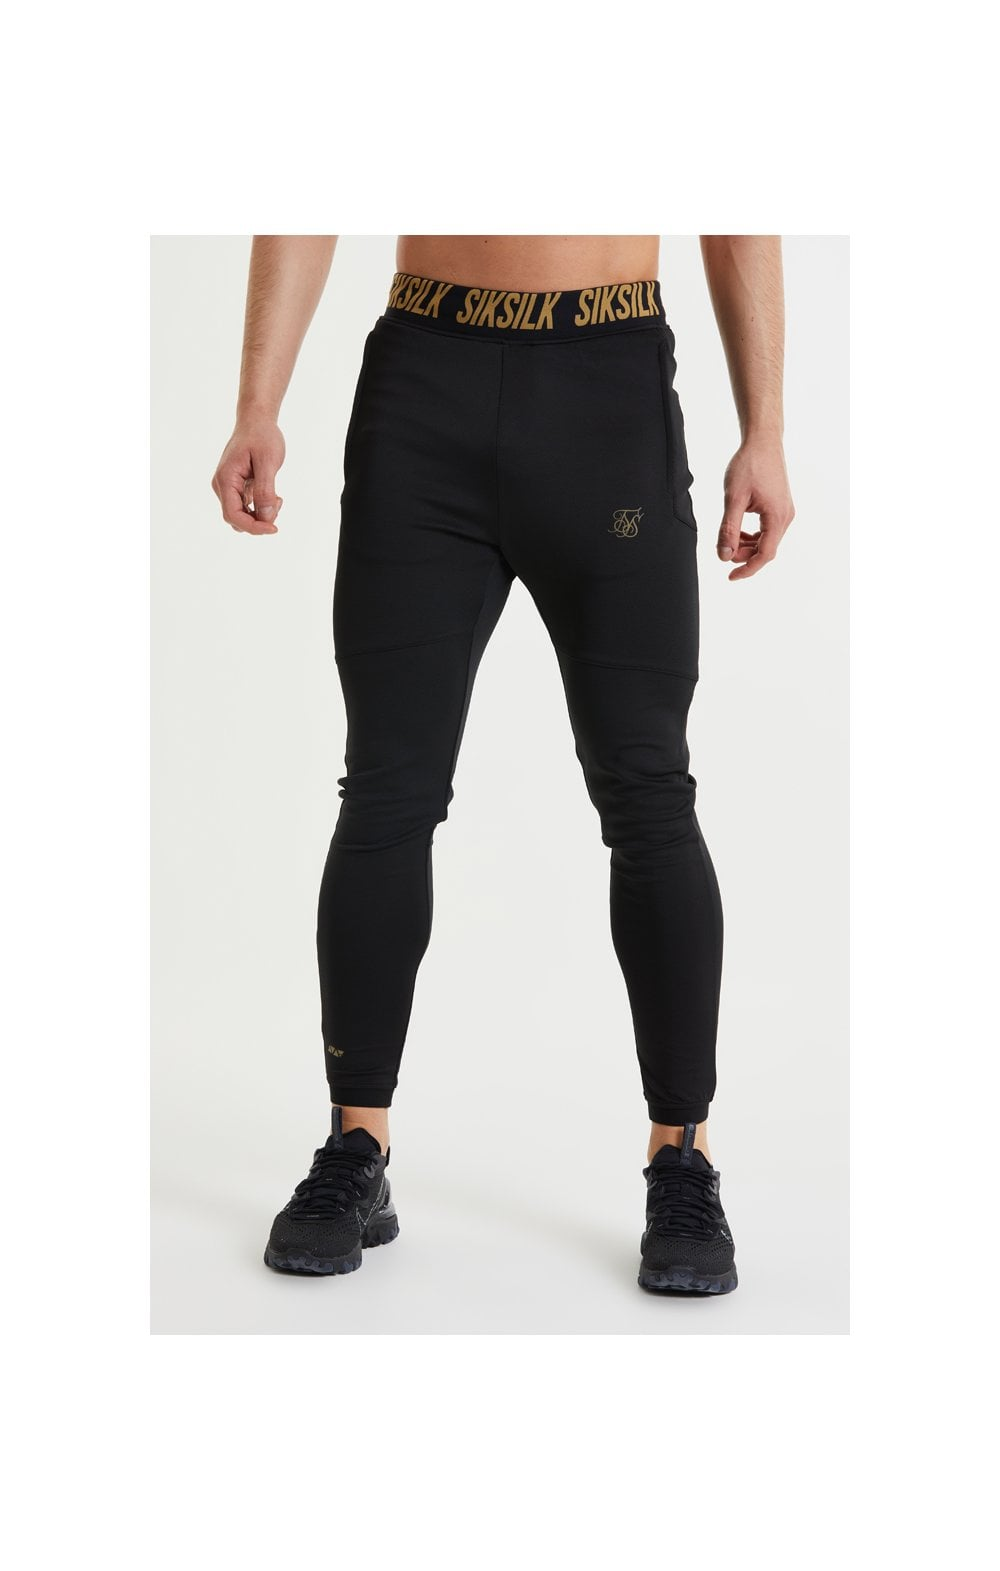 SikSilk Performance Agility Pants – Black & Gold